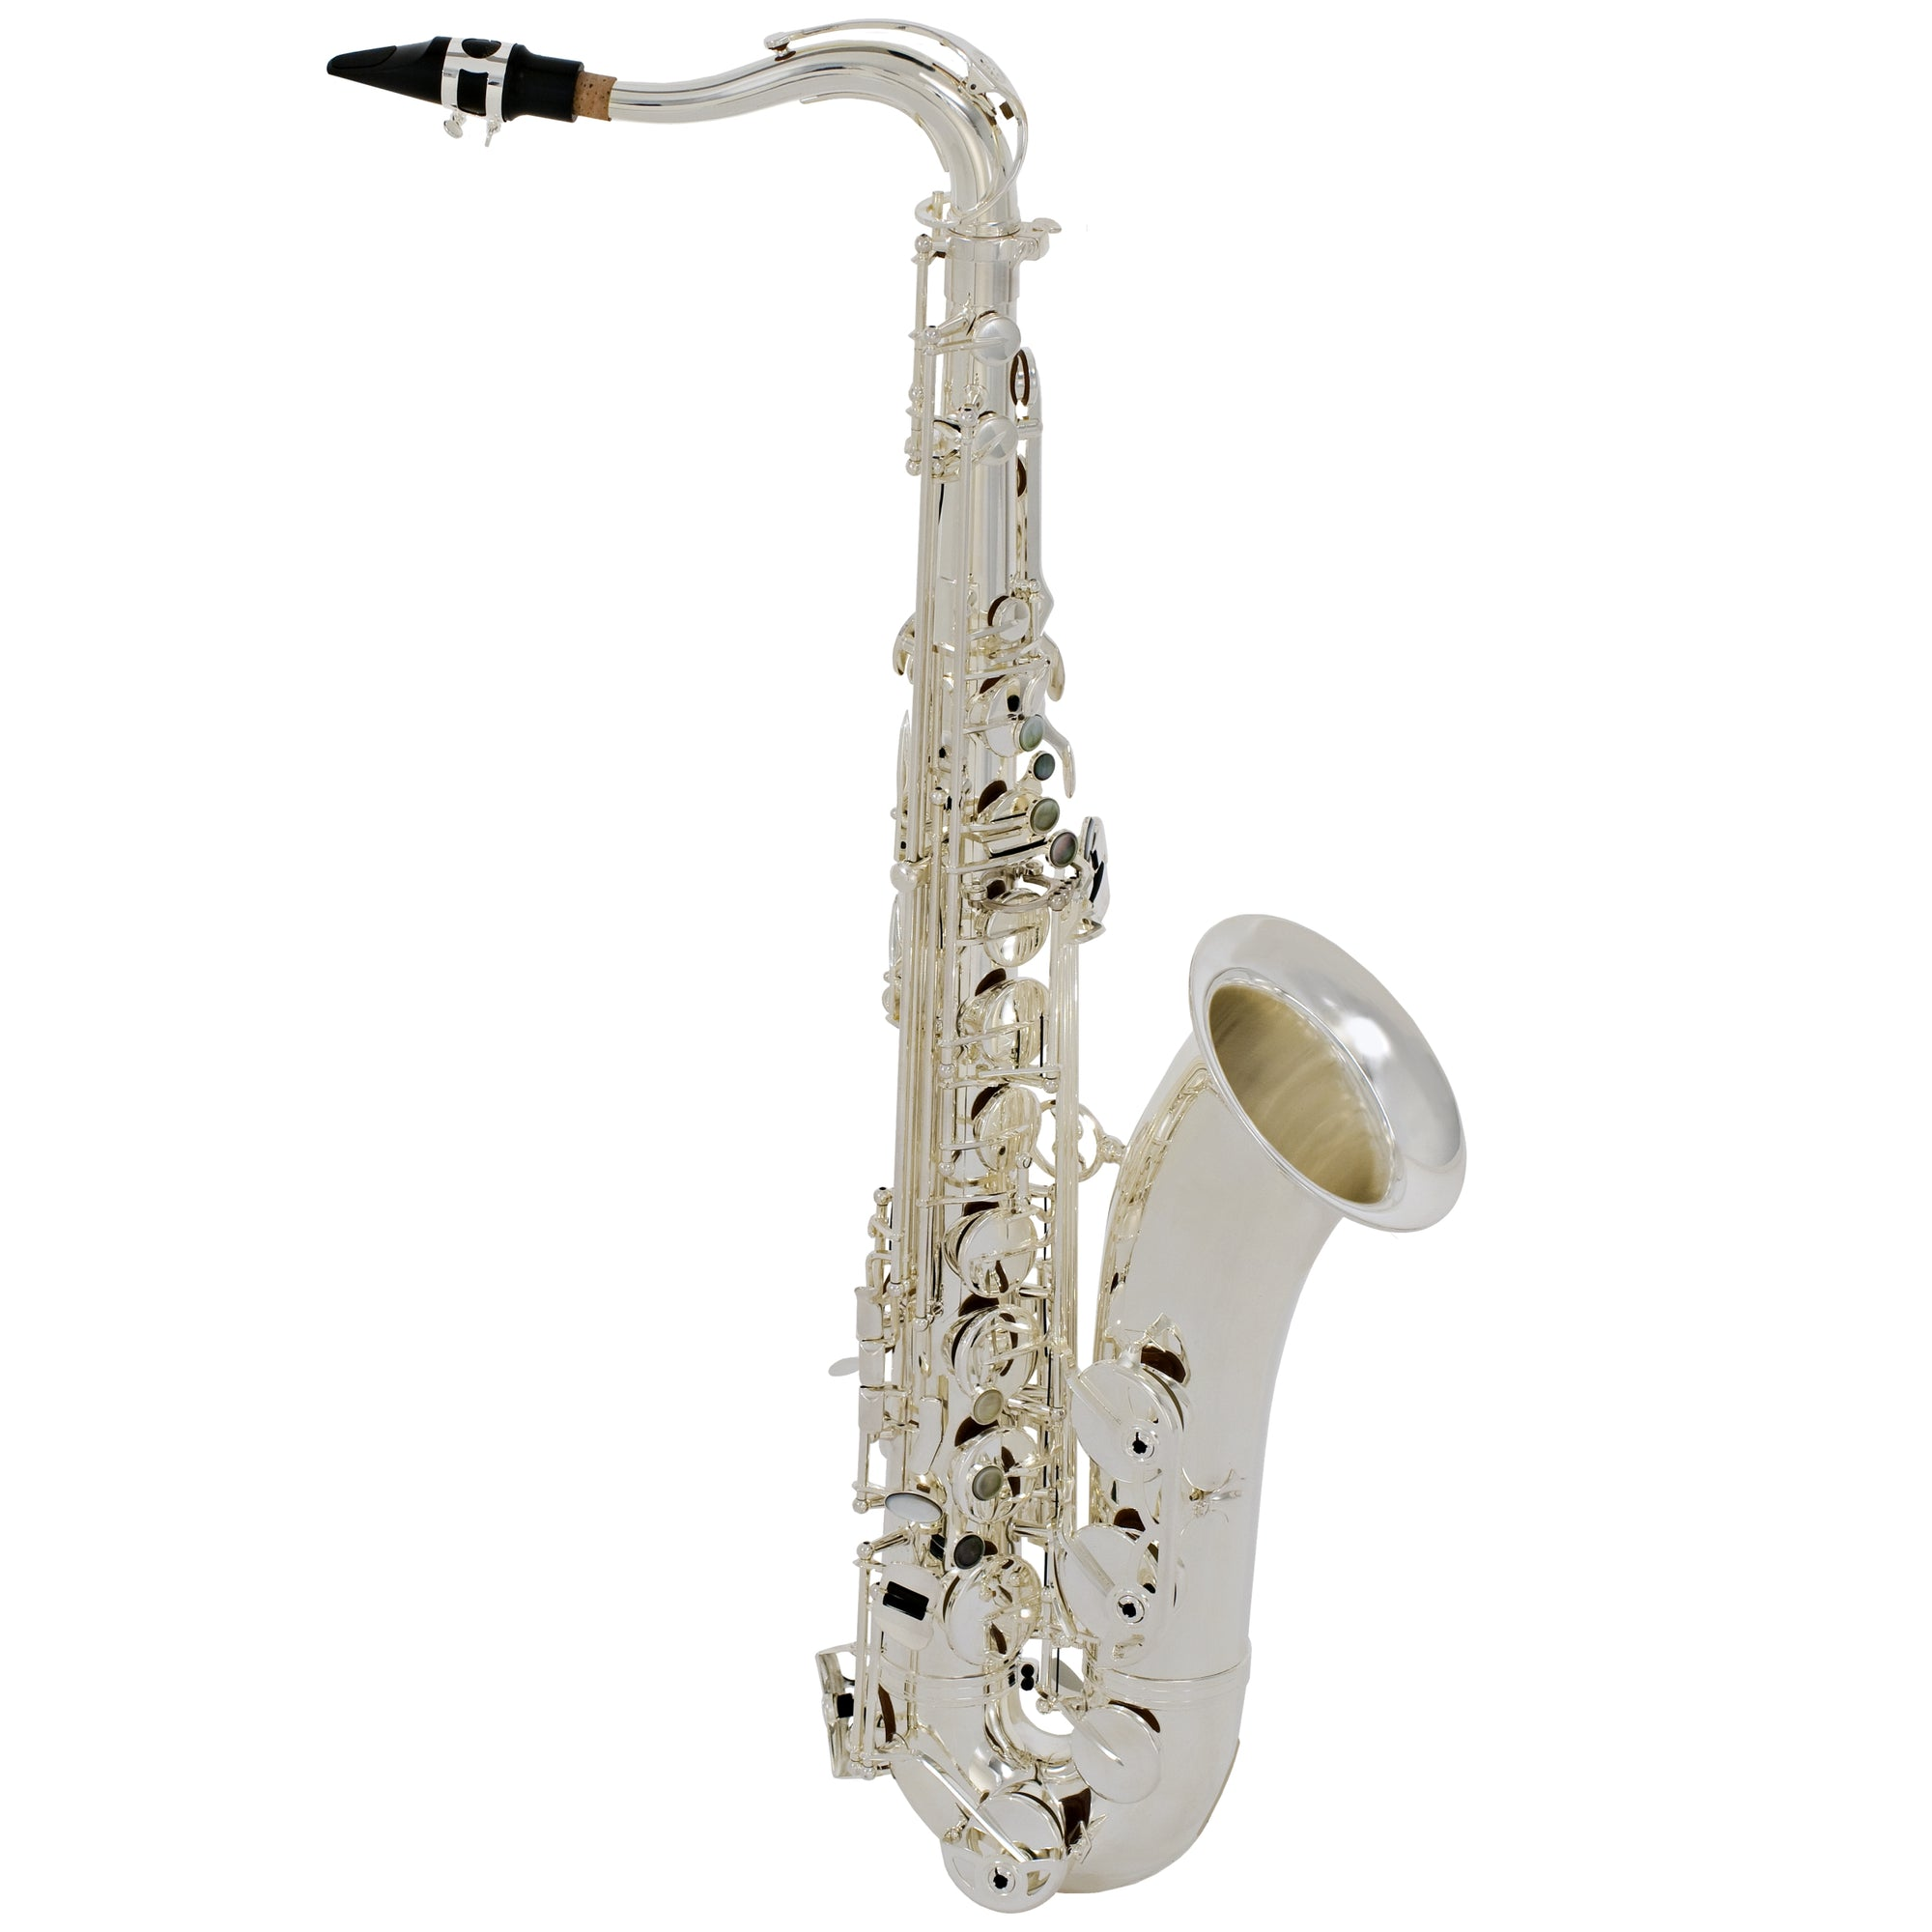 Selmer LaVoix II Tenor Saxophone Outfit - Silver-Plated | Kincaid's Is Music